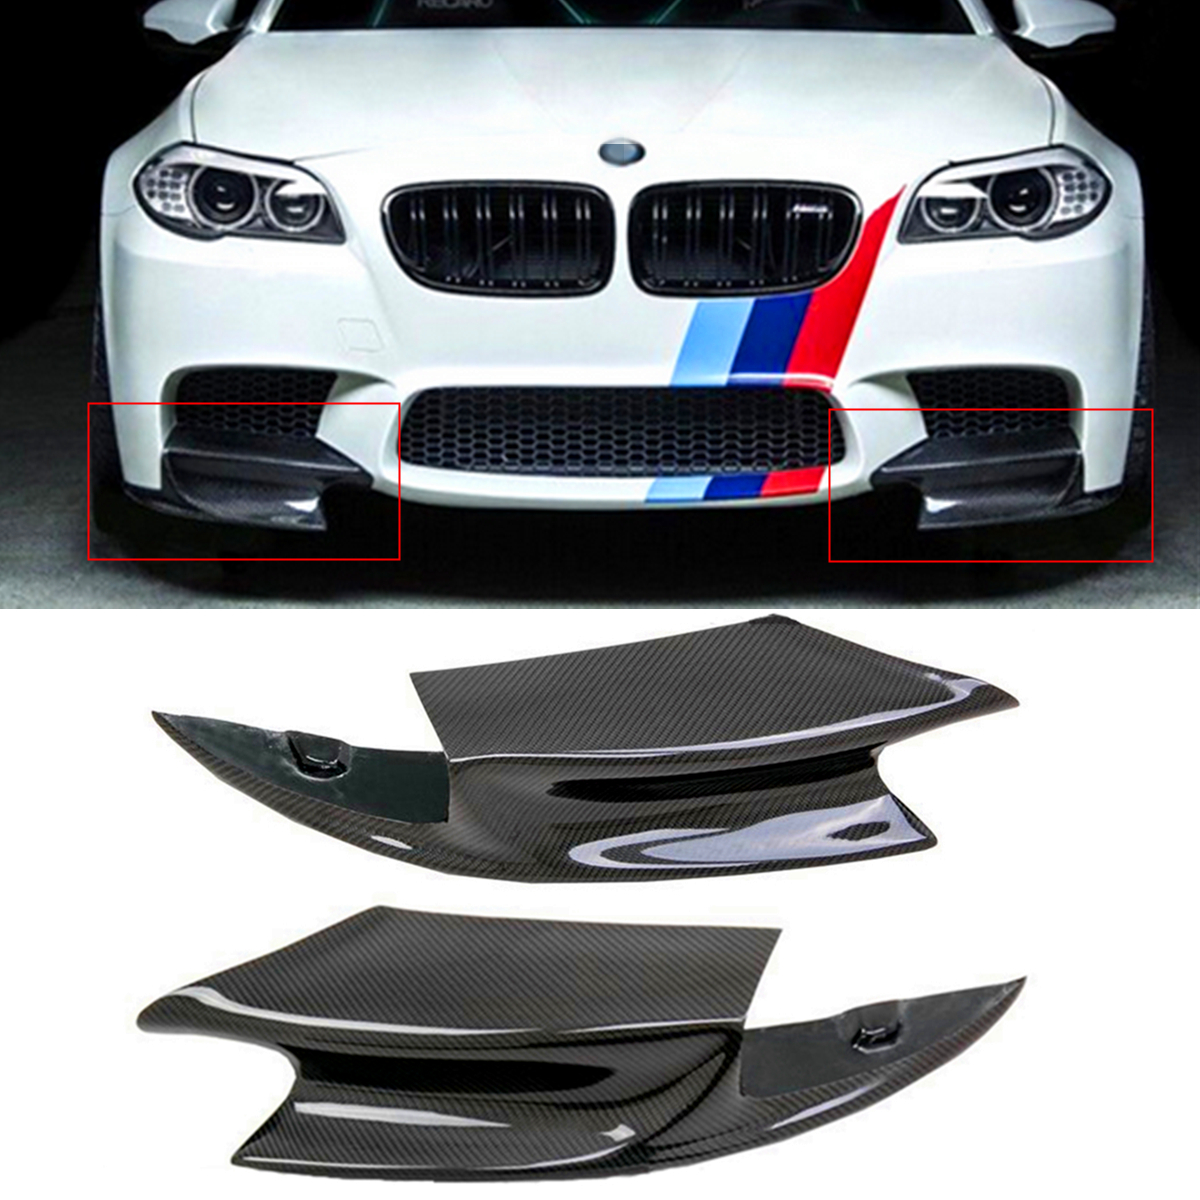 1 Pair Real Carbon Fiber Front Bumper Splitter Lip Fin Air Knife Auto Body For BMW F10 M5 2012-2016 R Style Diffuse Splitters цена